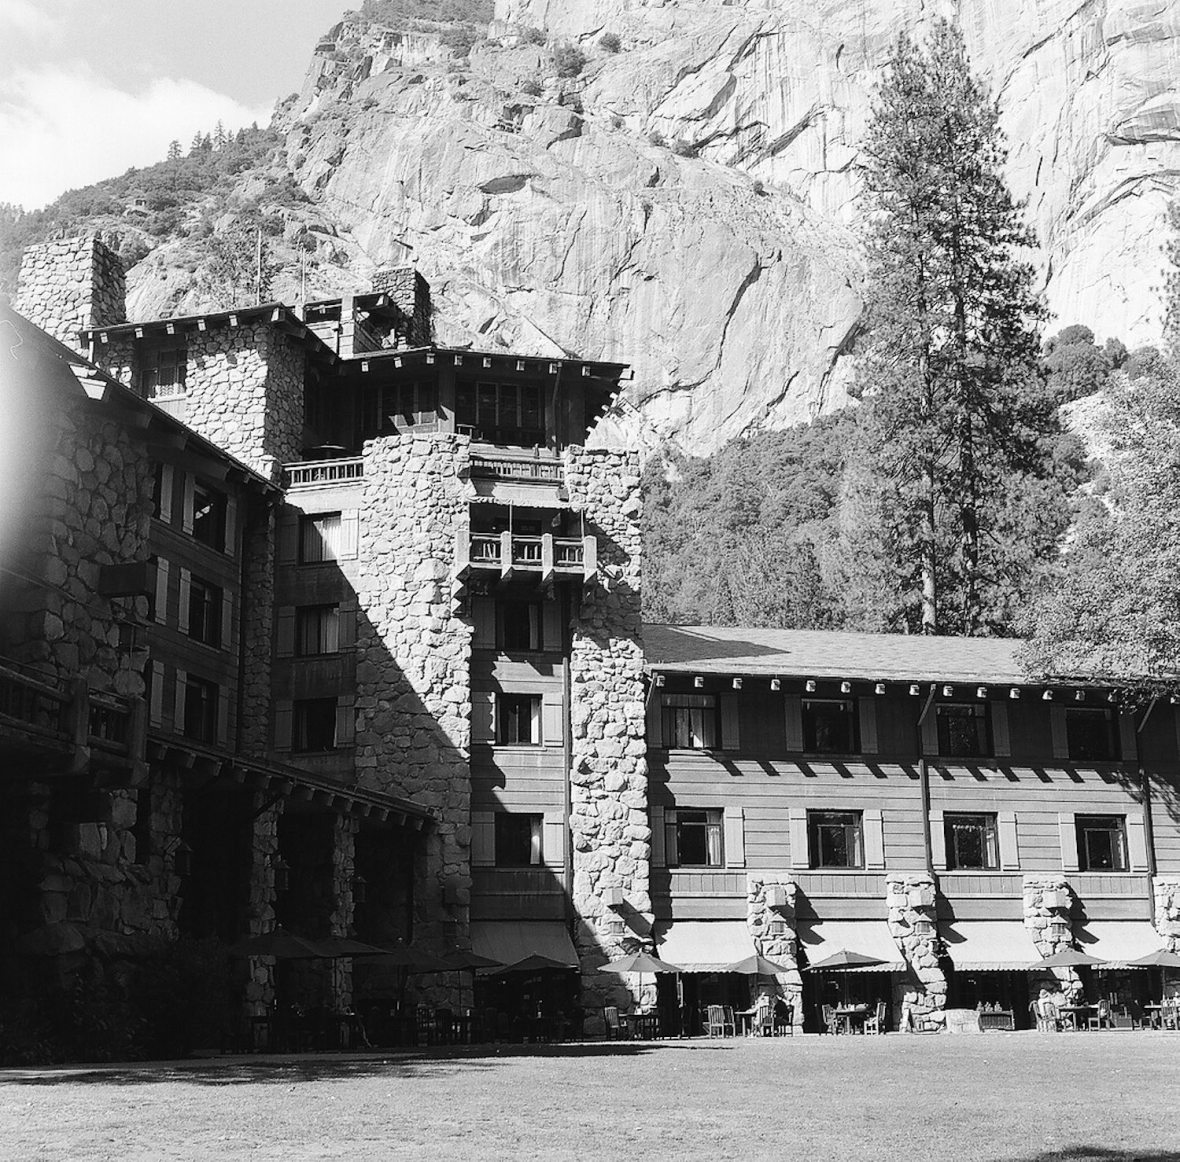 Medium format 120mm monochrome film photography The Ahwahnee - formerly The Majestic Yosemite Hotel in Yosemite National Park